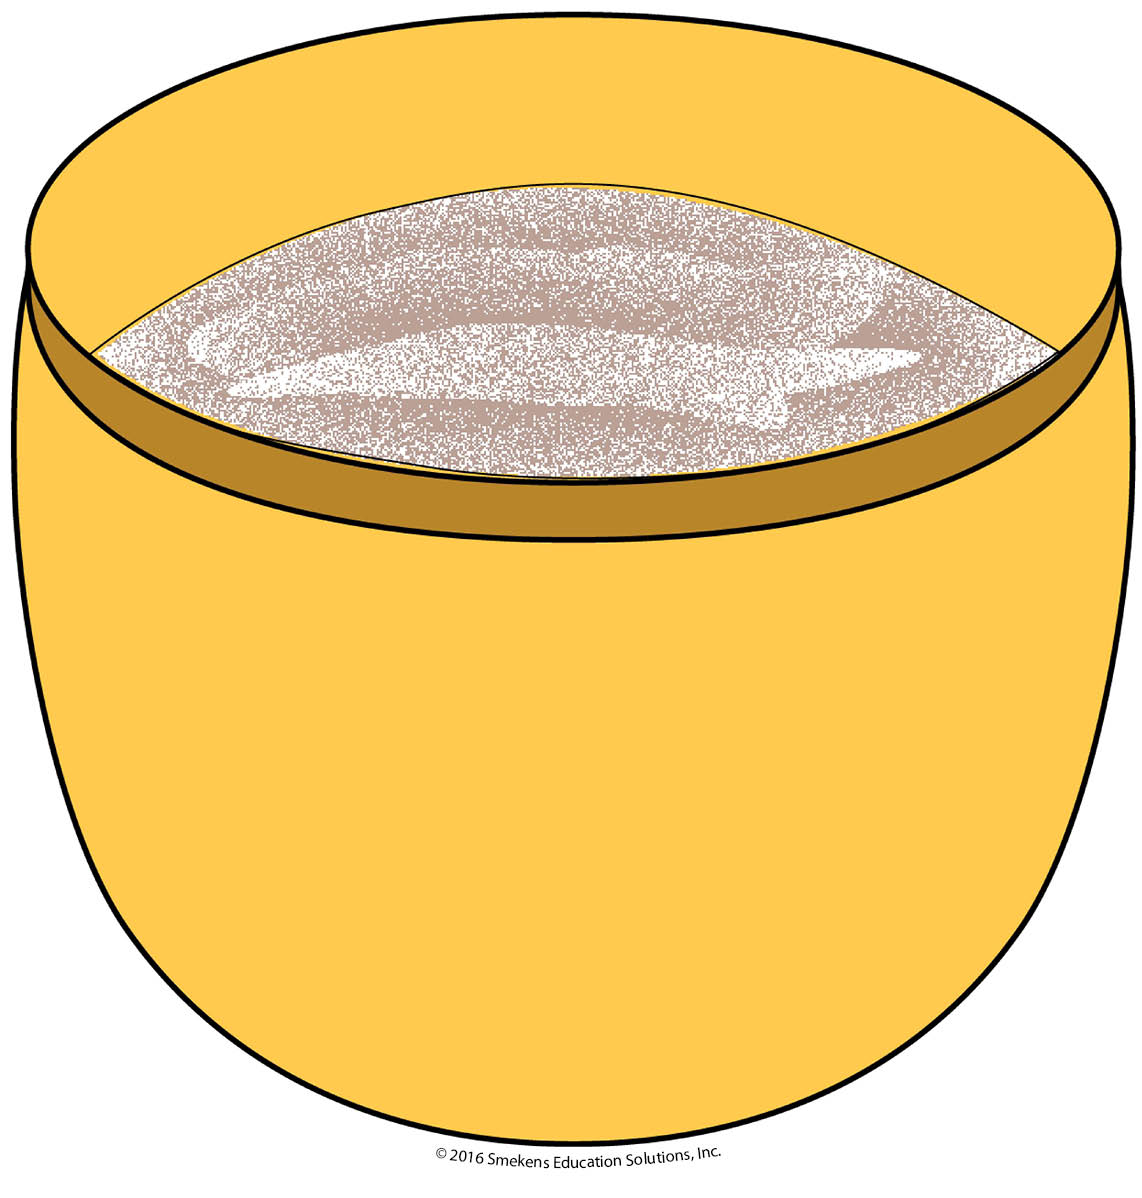 Cake Mix in a Bowl